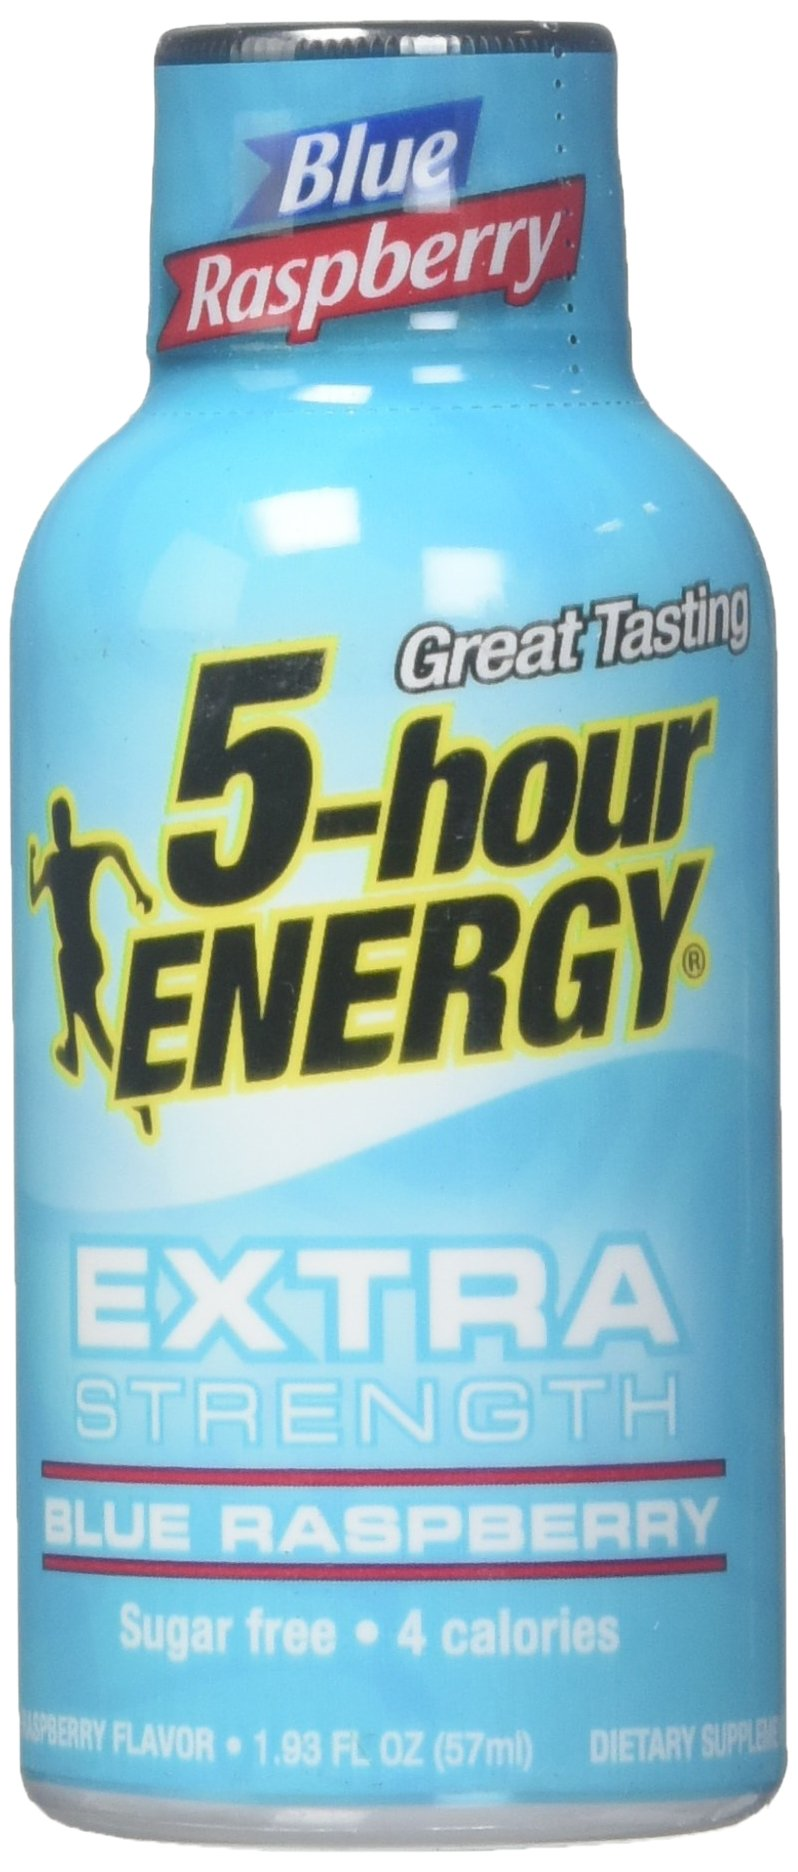 5 Hour Energy Extra Strength Blue Raspberry - Pack of 6 by 5 Hour Energy